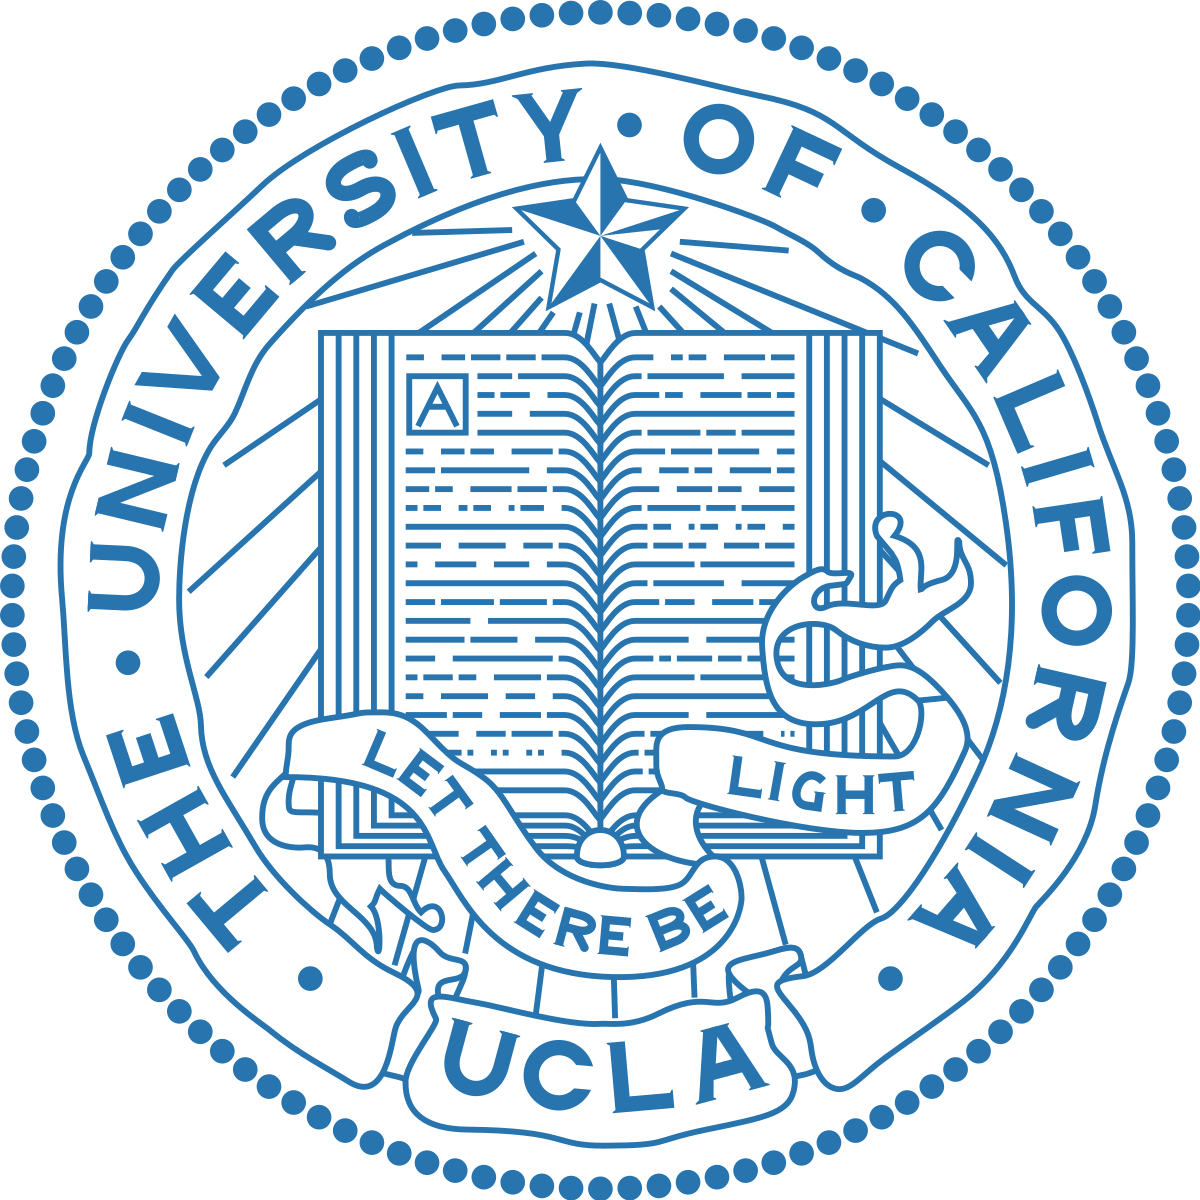 University of California - Top 30 Best Graphic Design Degree Programs 2020